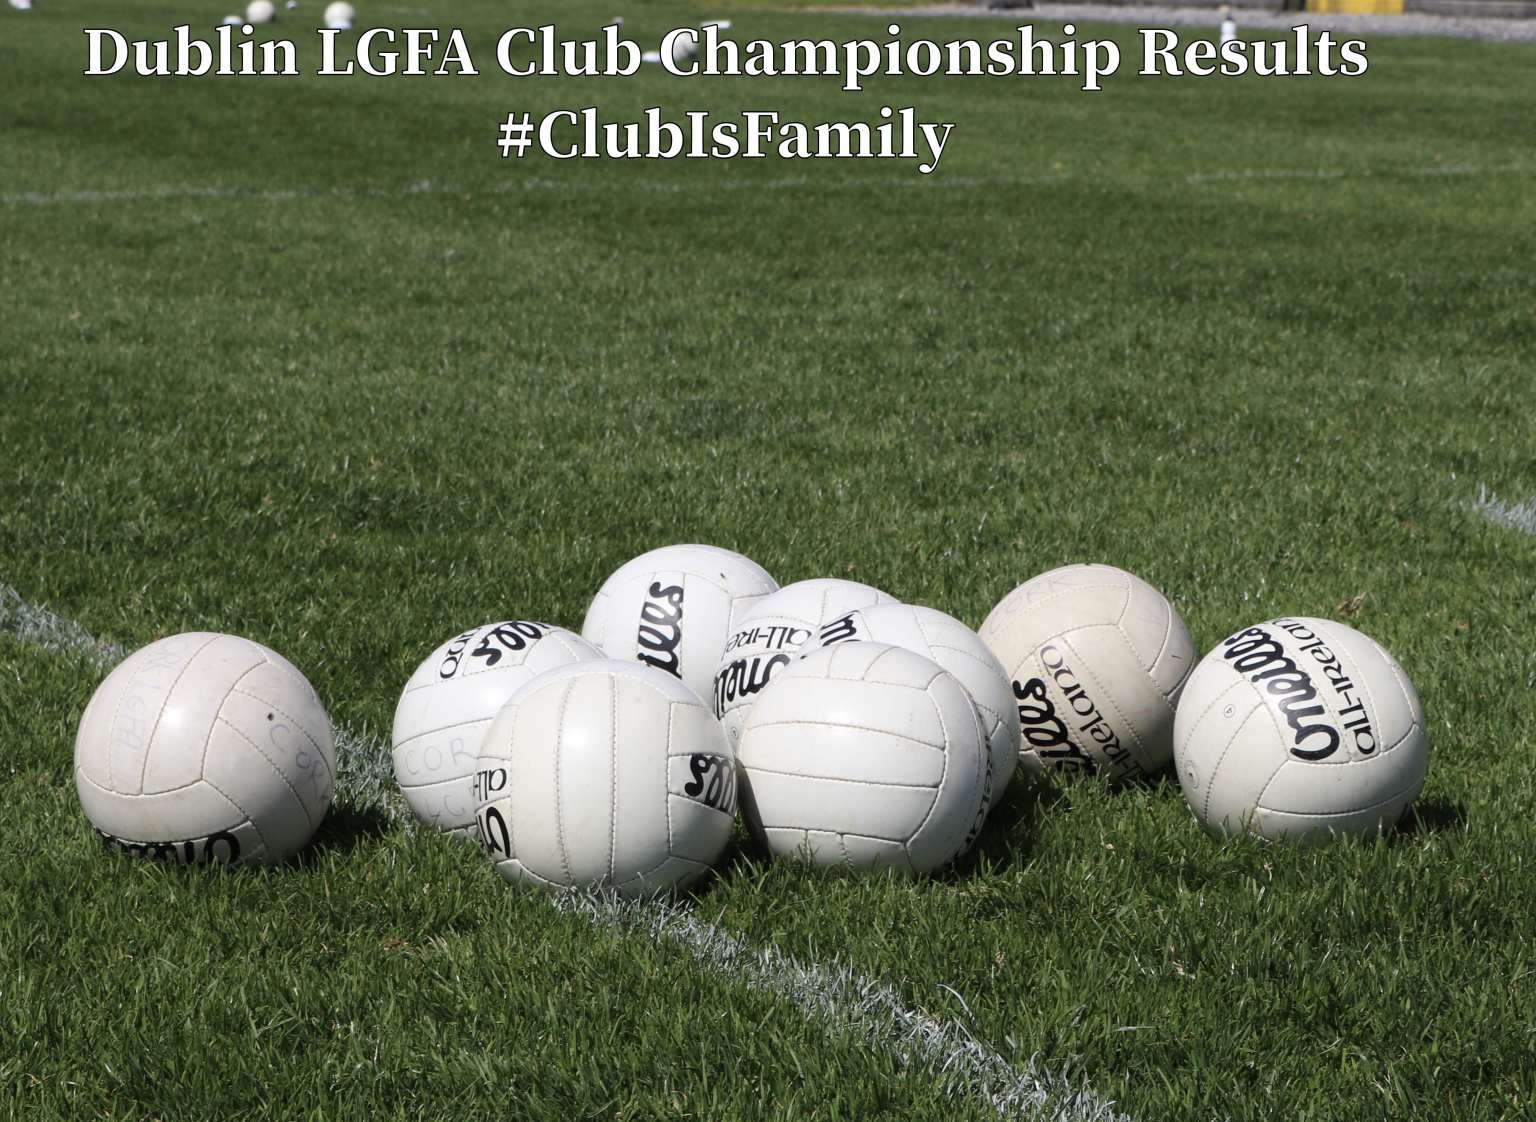 Nine white footballs on a grass pitch to signify the results from the Dublin LGFA Club Championships as the battle for the final semi final place in the senior championship comes down to the wire